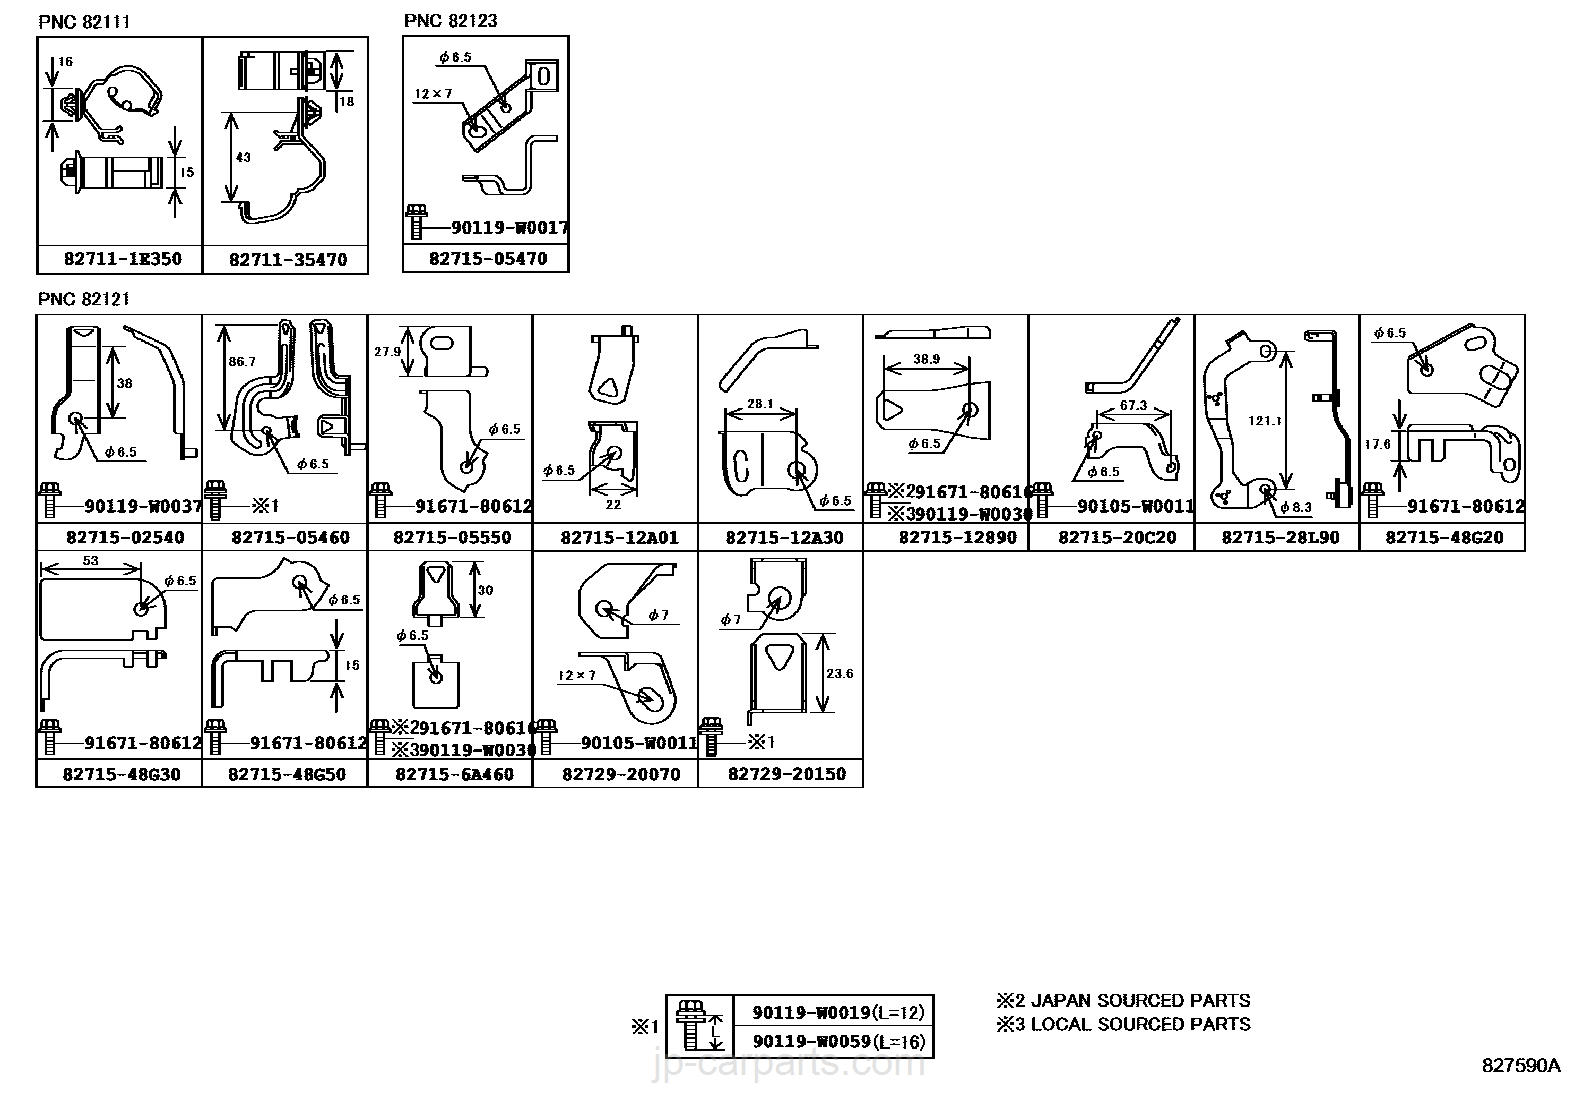 5 16 Transmission Cooling Line also 1994 Isuzu Pickup Engine Diagram as well 1999 Toyota T100 Transmission Diagram further Wiring Diagram For 1996 Toyota T100 in addition Nissan Twin Cam 16 Valve Engine. on p 0900c15280060e44